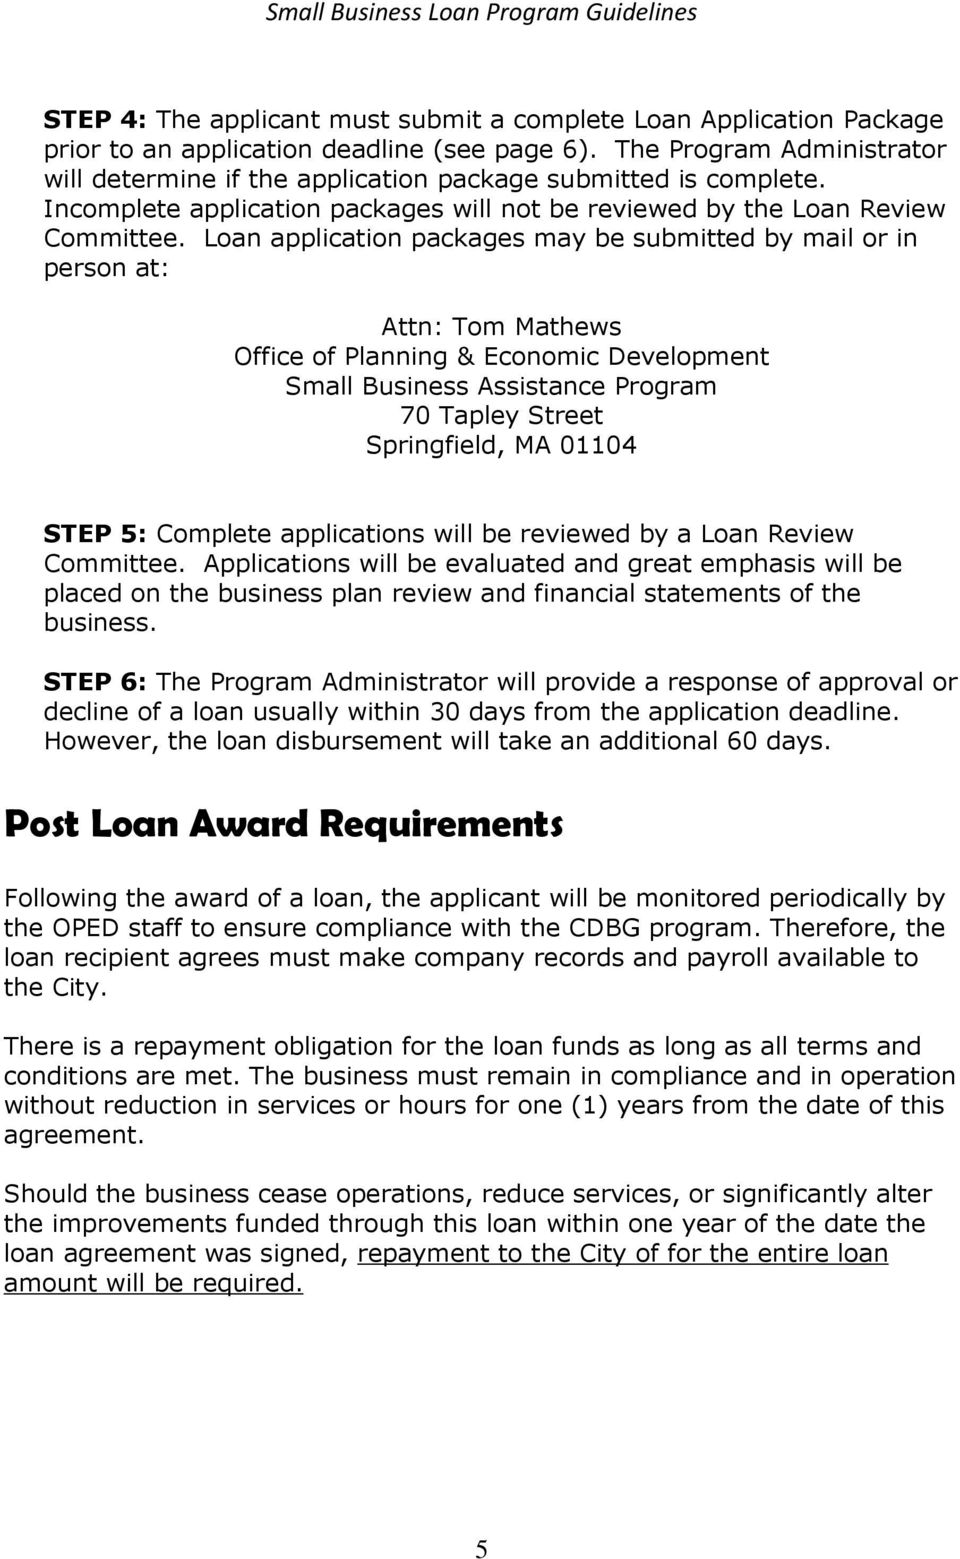 Loan application packages may be submitted by mail or in person at: Attn: Tom Mathews Office of Planning & Economic Development Small Business Assistance Program 70 Tapley Street Springfield, MA